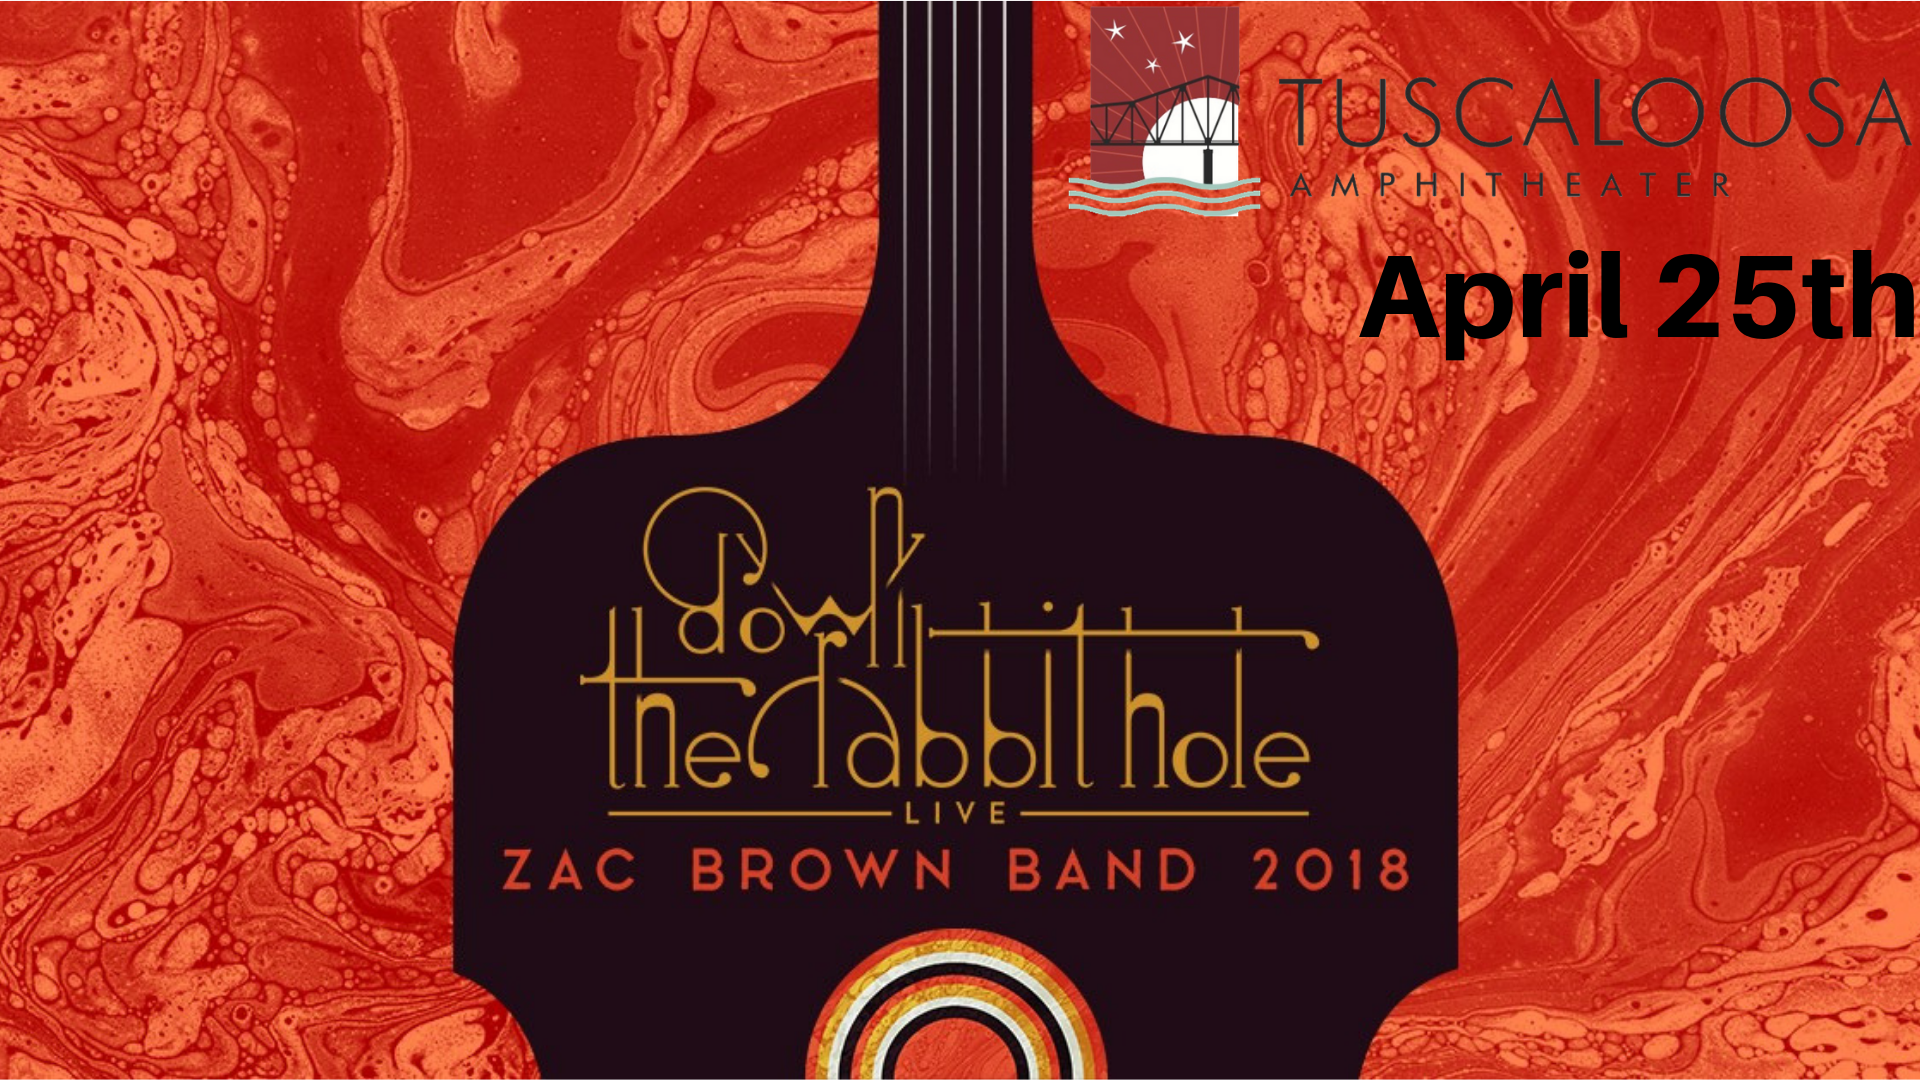 Zac Brown Band-LIVE at the Tuscaloosa Amphitheater April 25th